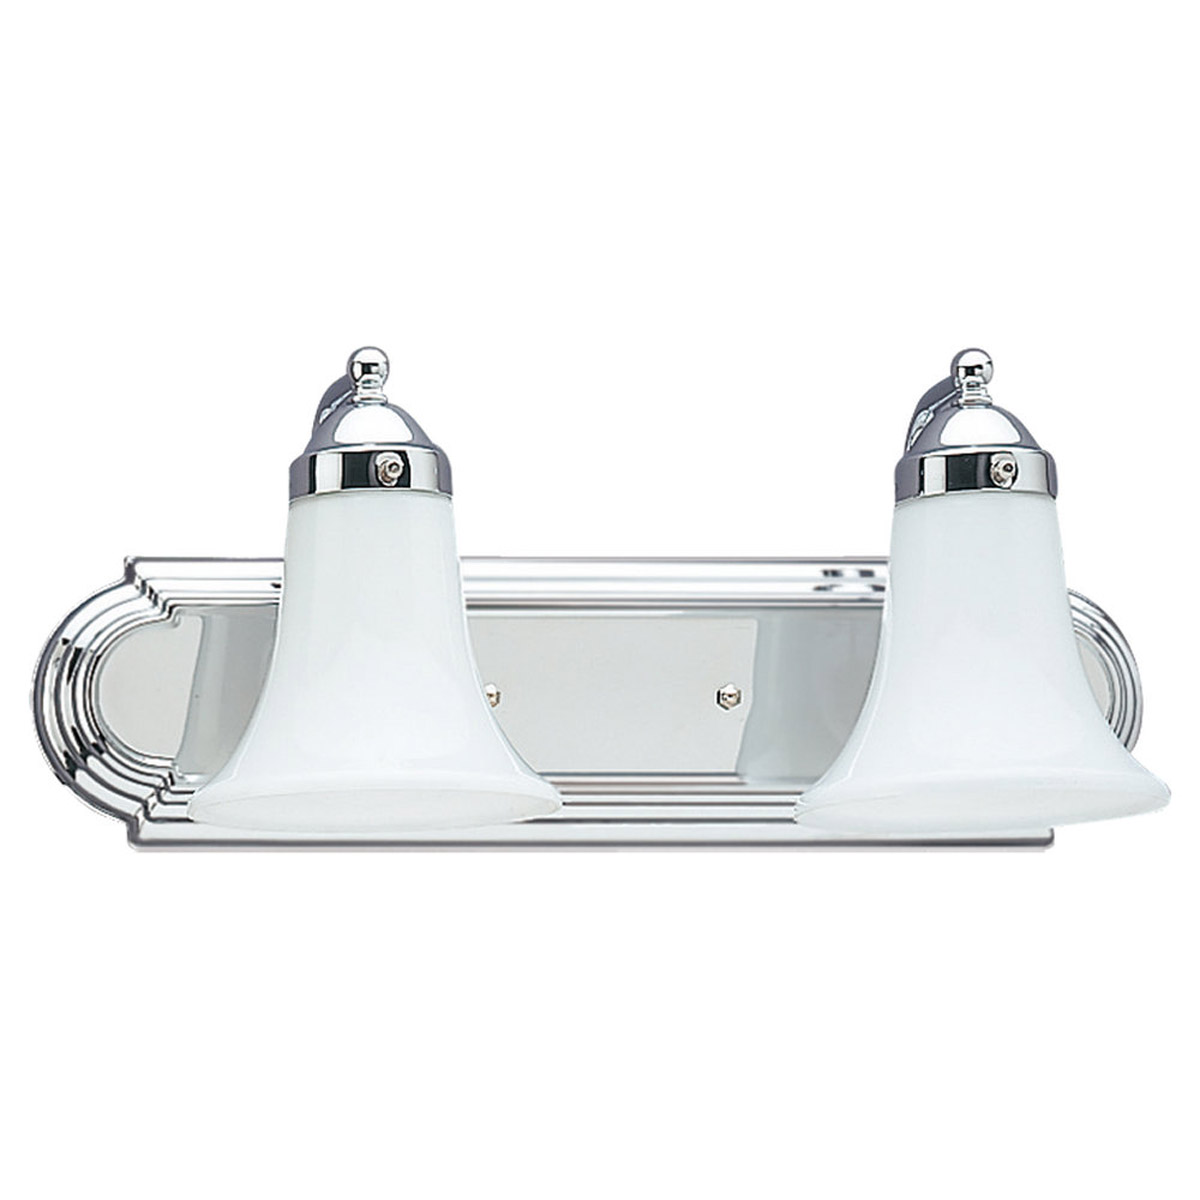 Sea Gull Lighting Astoria 2 Light Bath Vanity in Chrome 4858-05